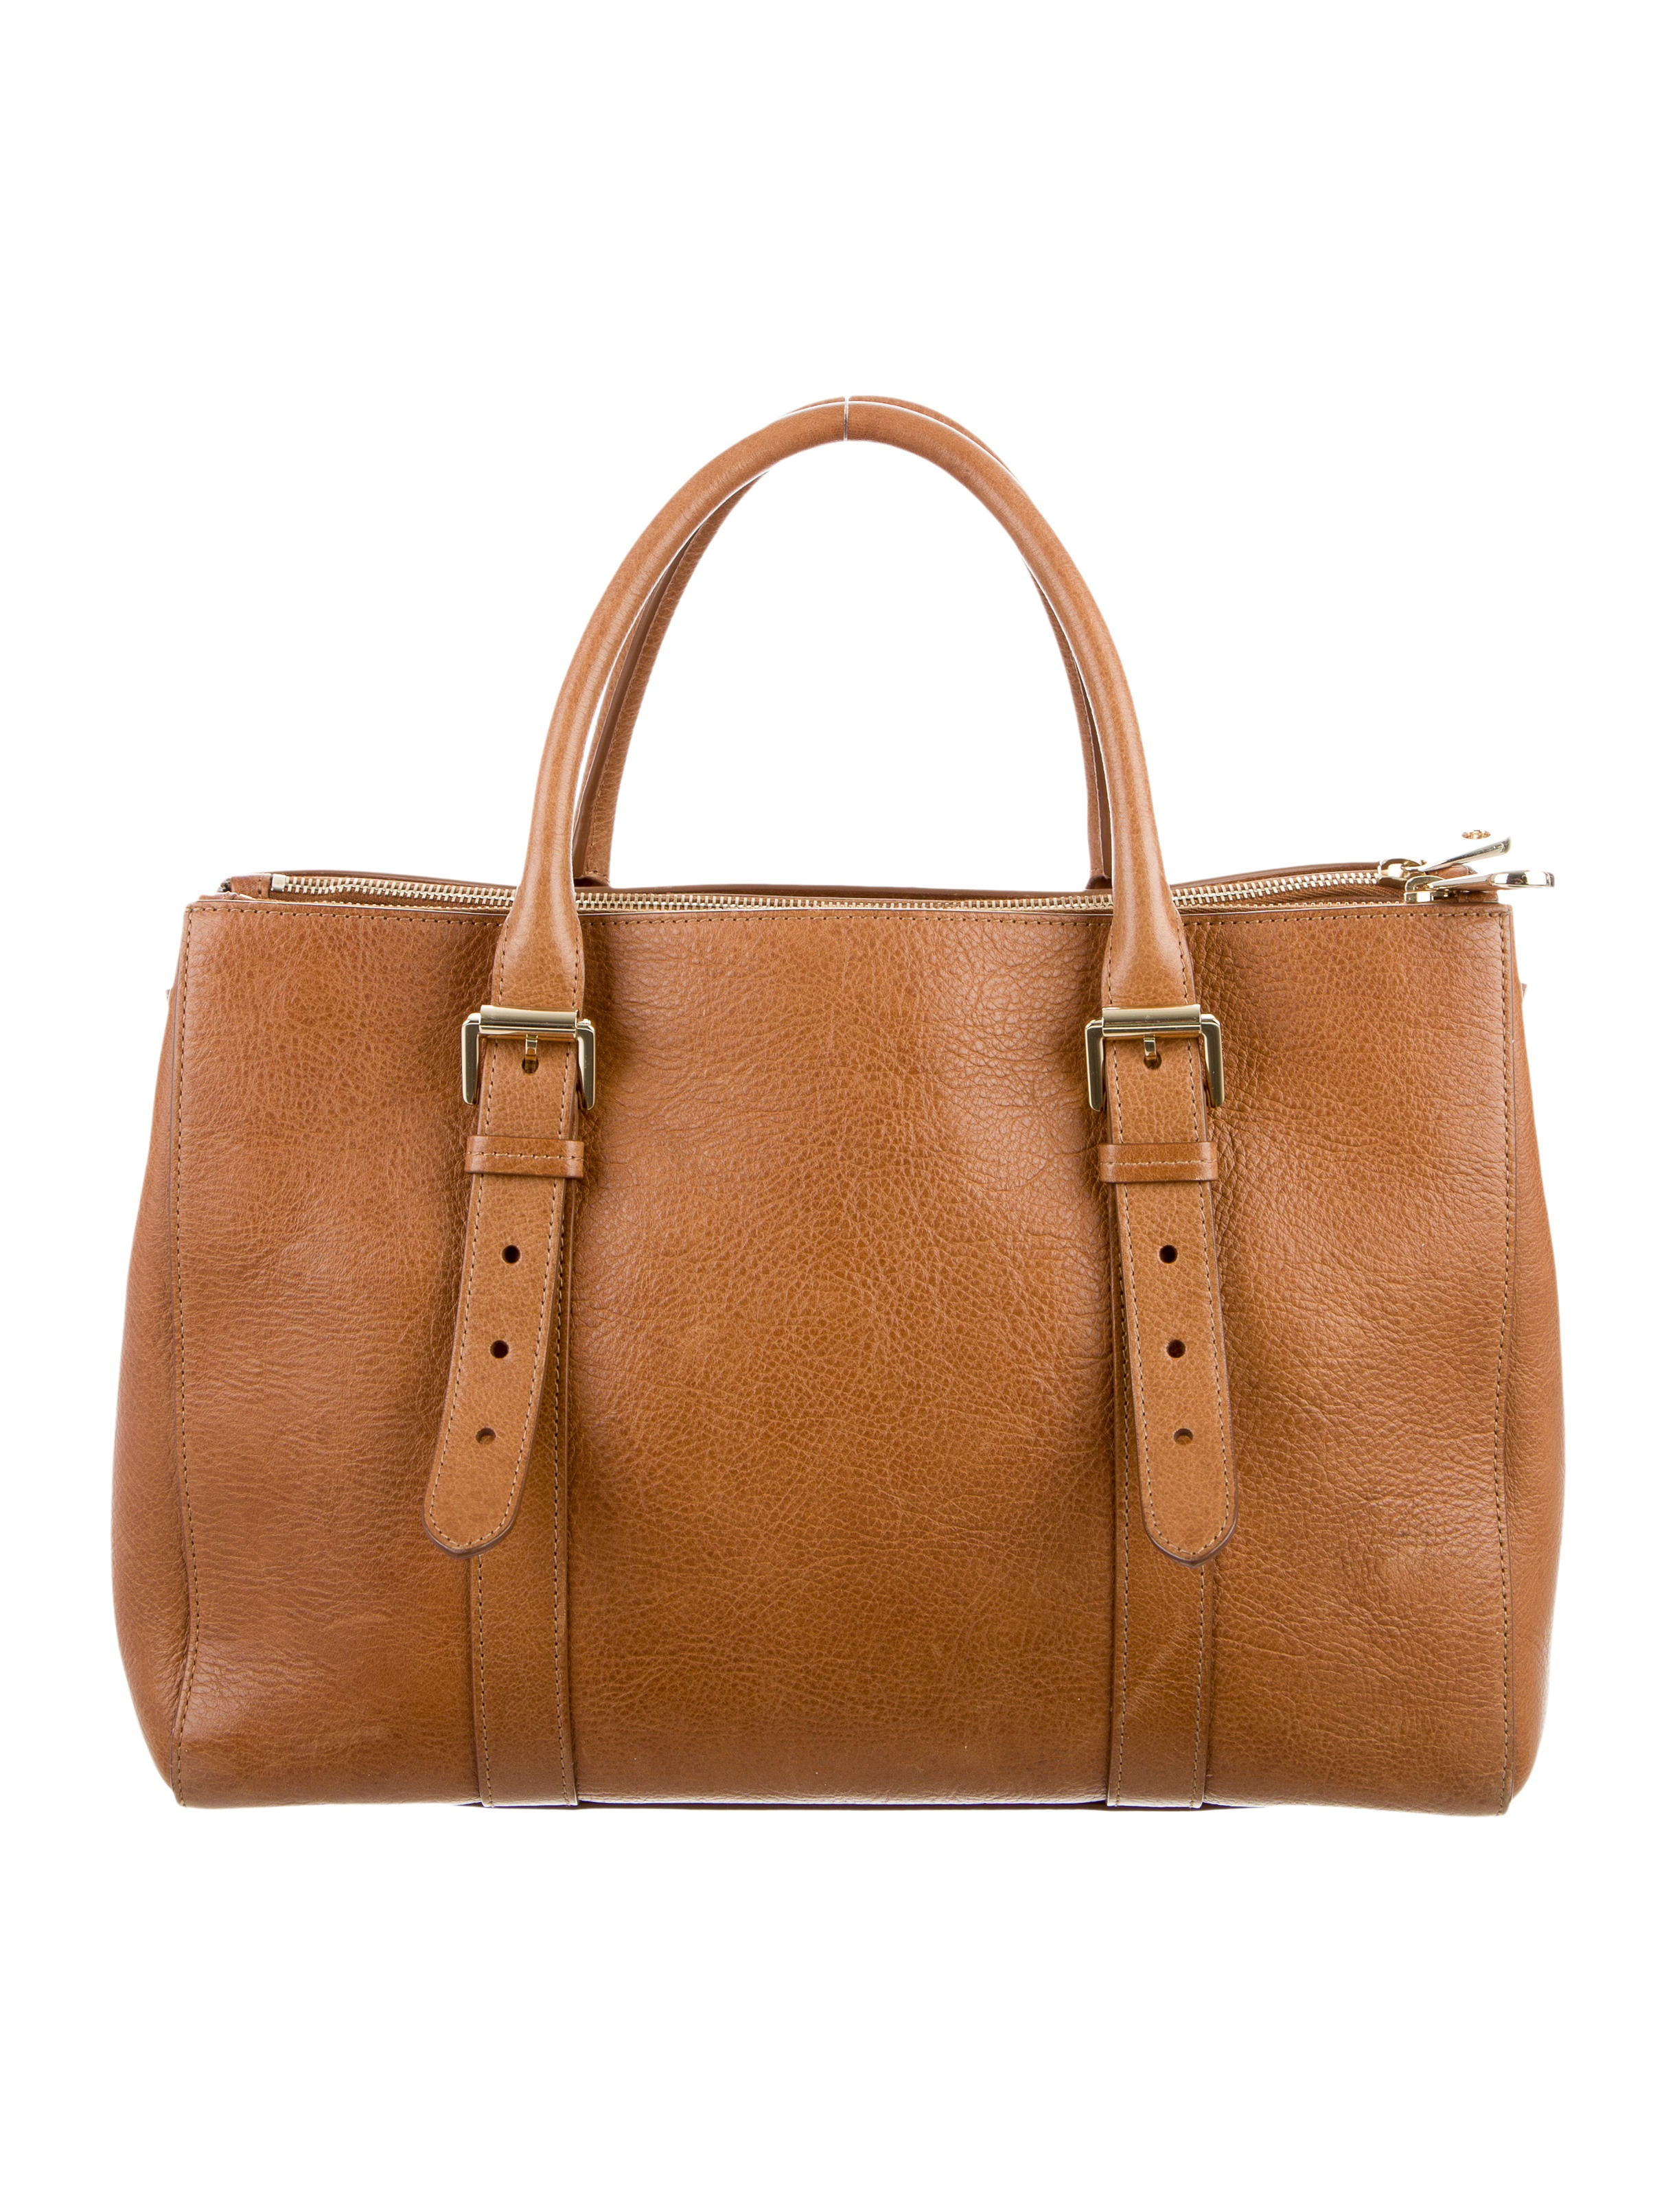 Mulberry bayswater double zip bag handbags mul22242 for The bayswater